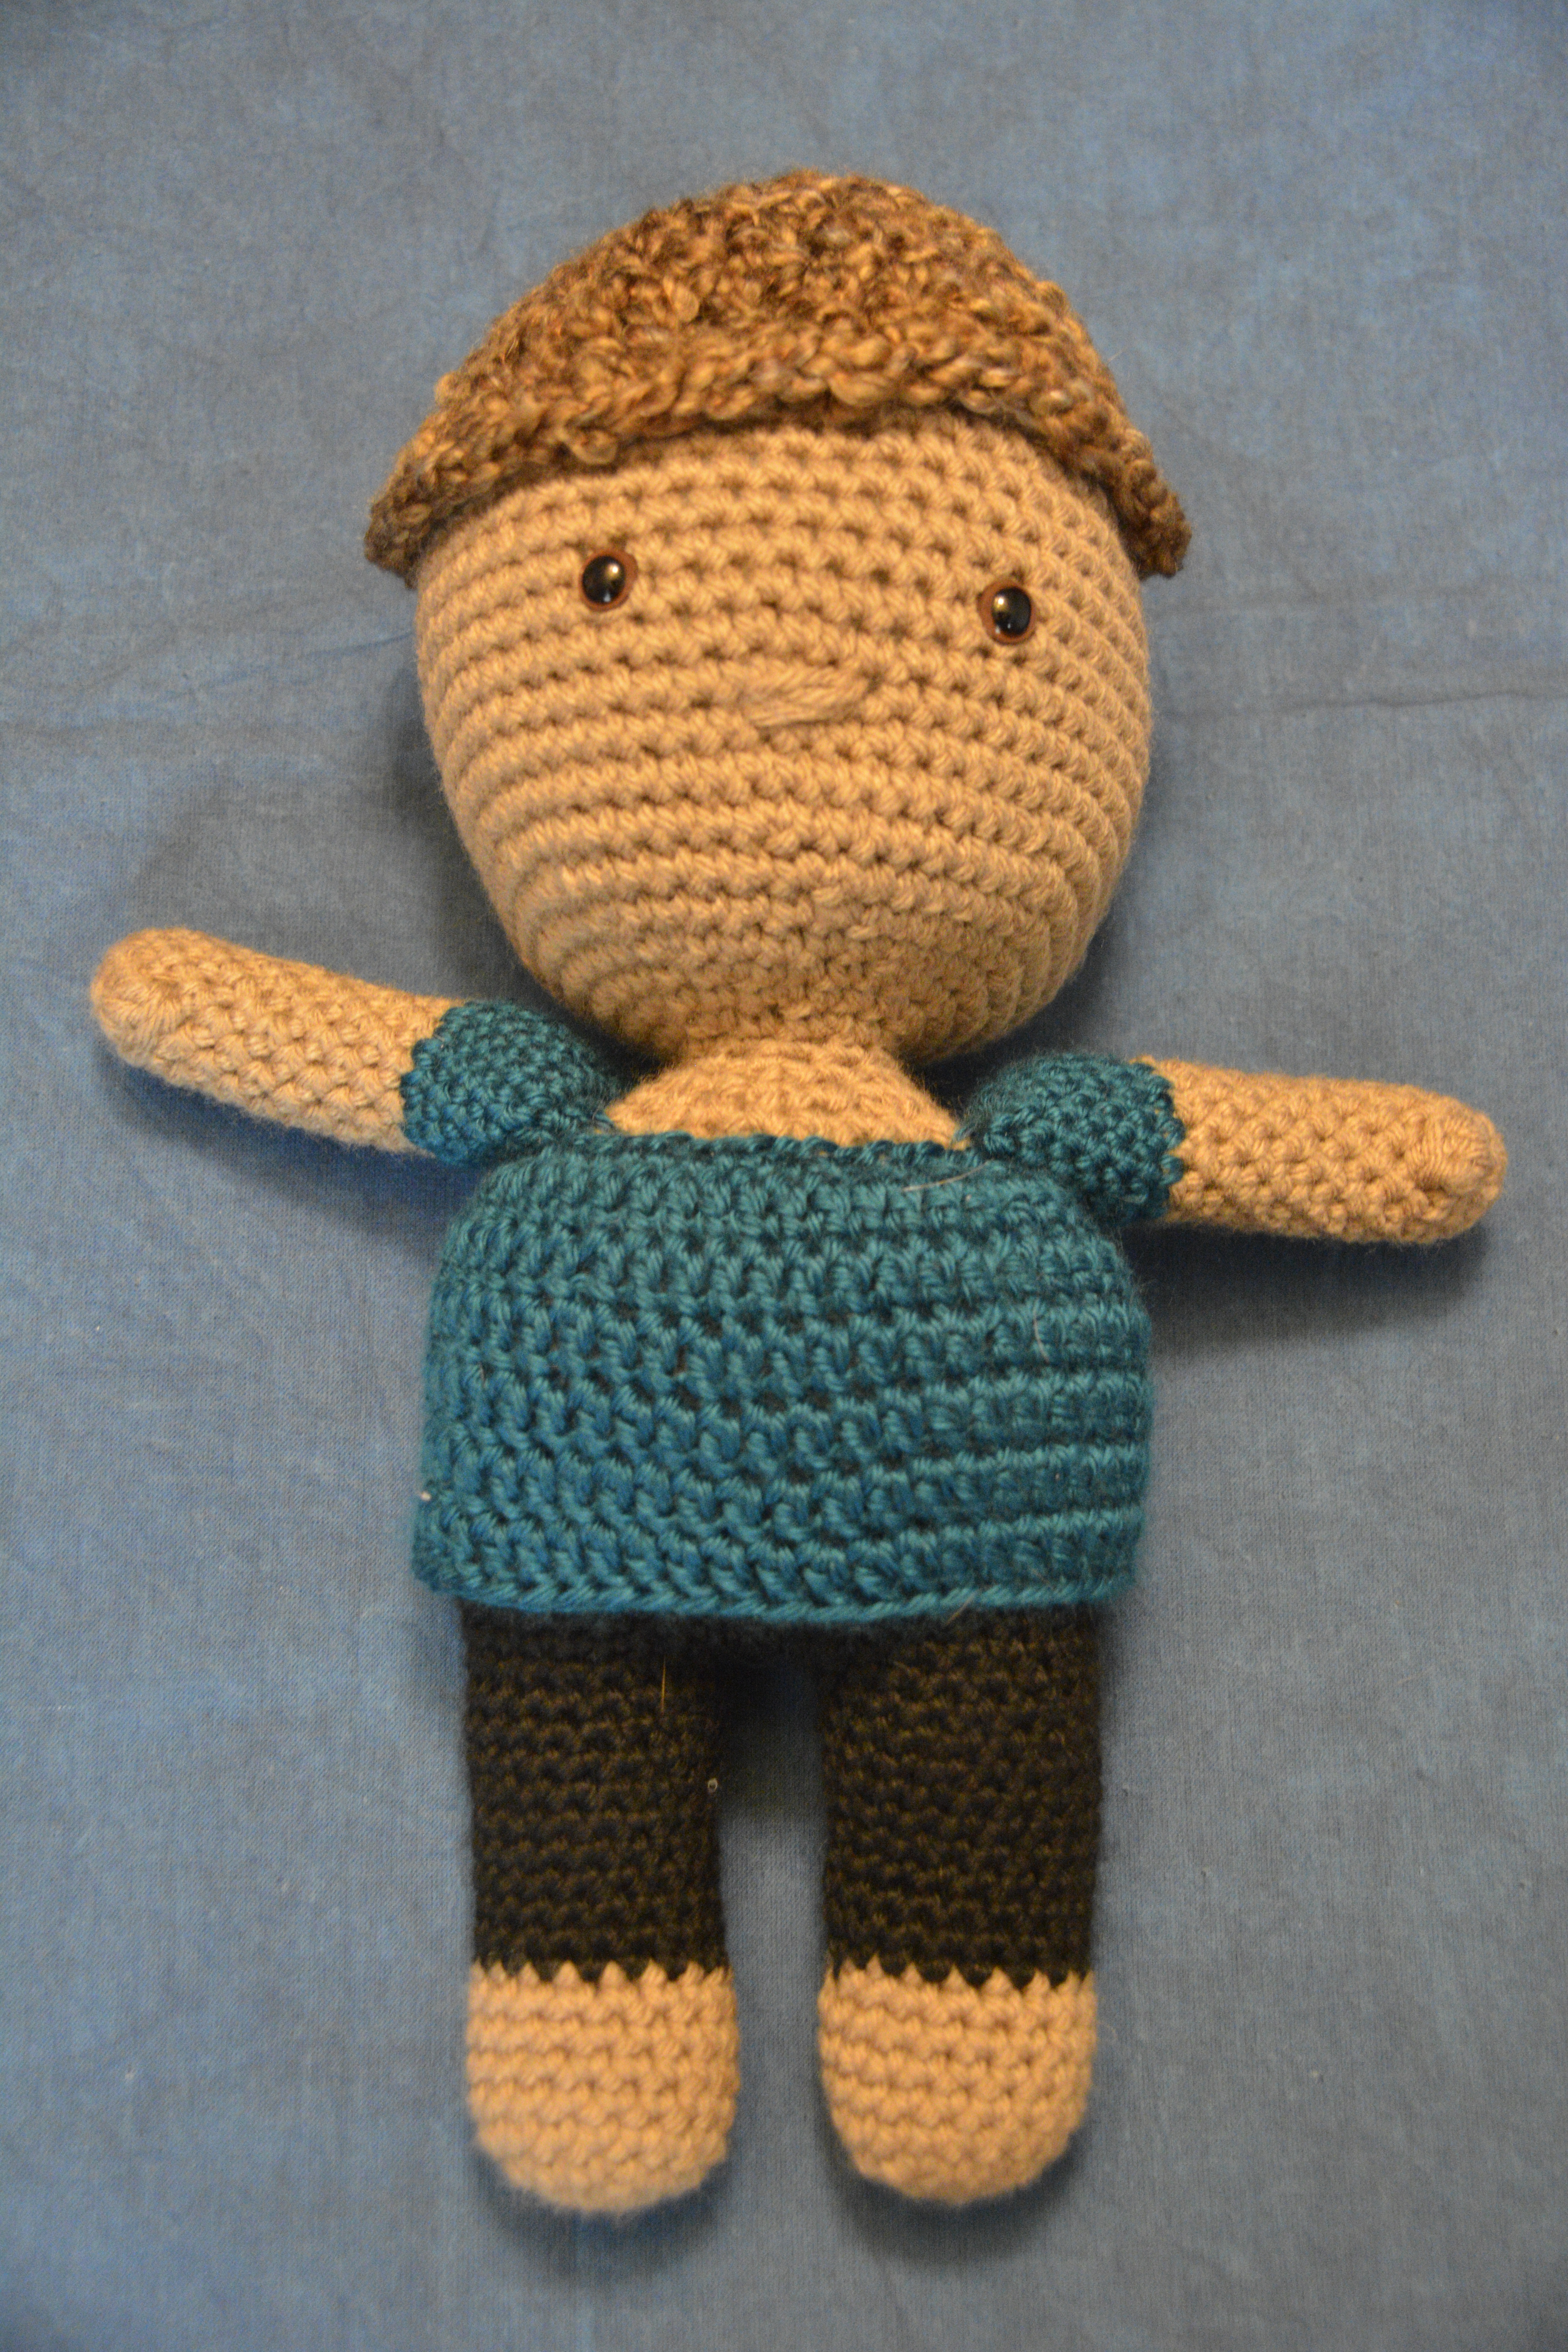 tan deaf boy doll with short hair, no ears, turquoise shirt, and black pants; plush deaf dolls with hearing aids and cochlear implants